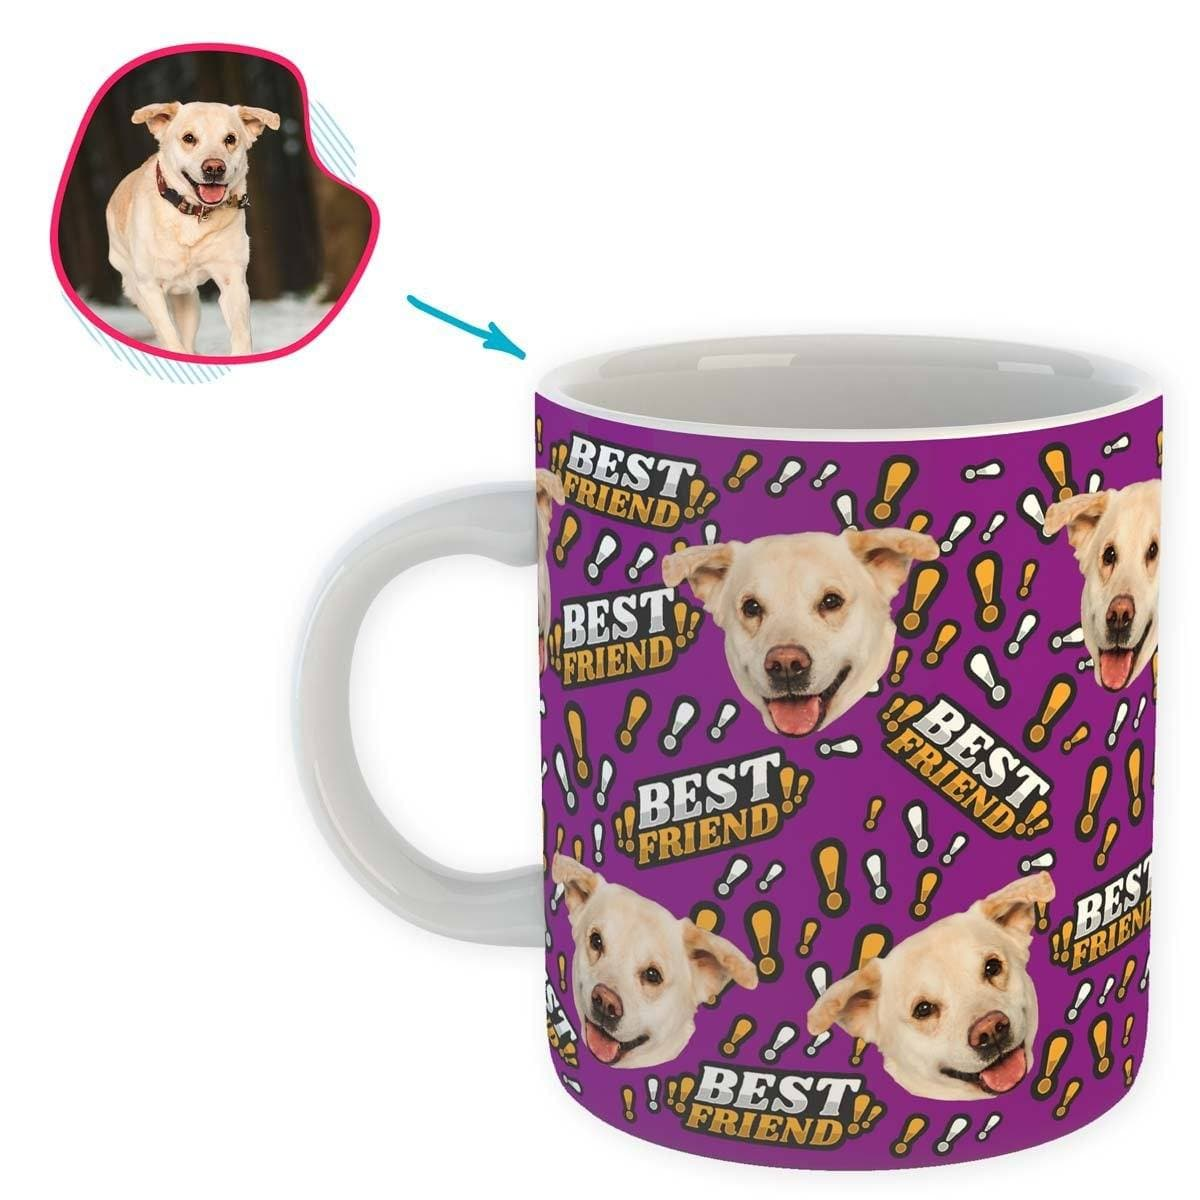 purple Best Friend mug personalized with photo of face printed on it